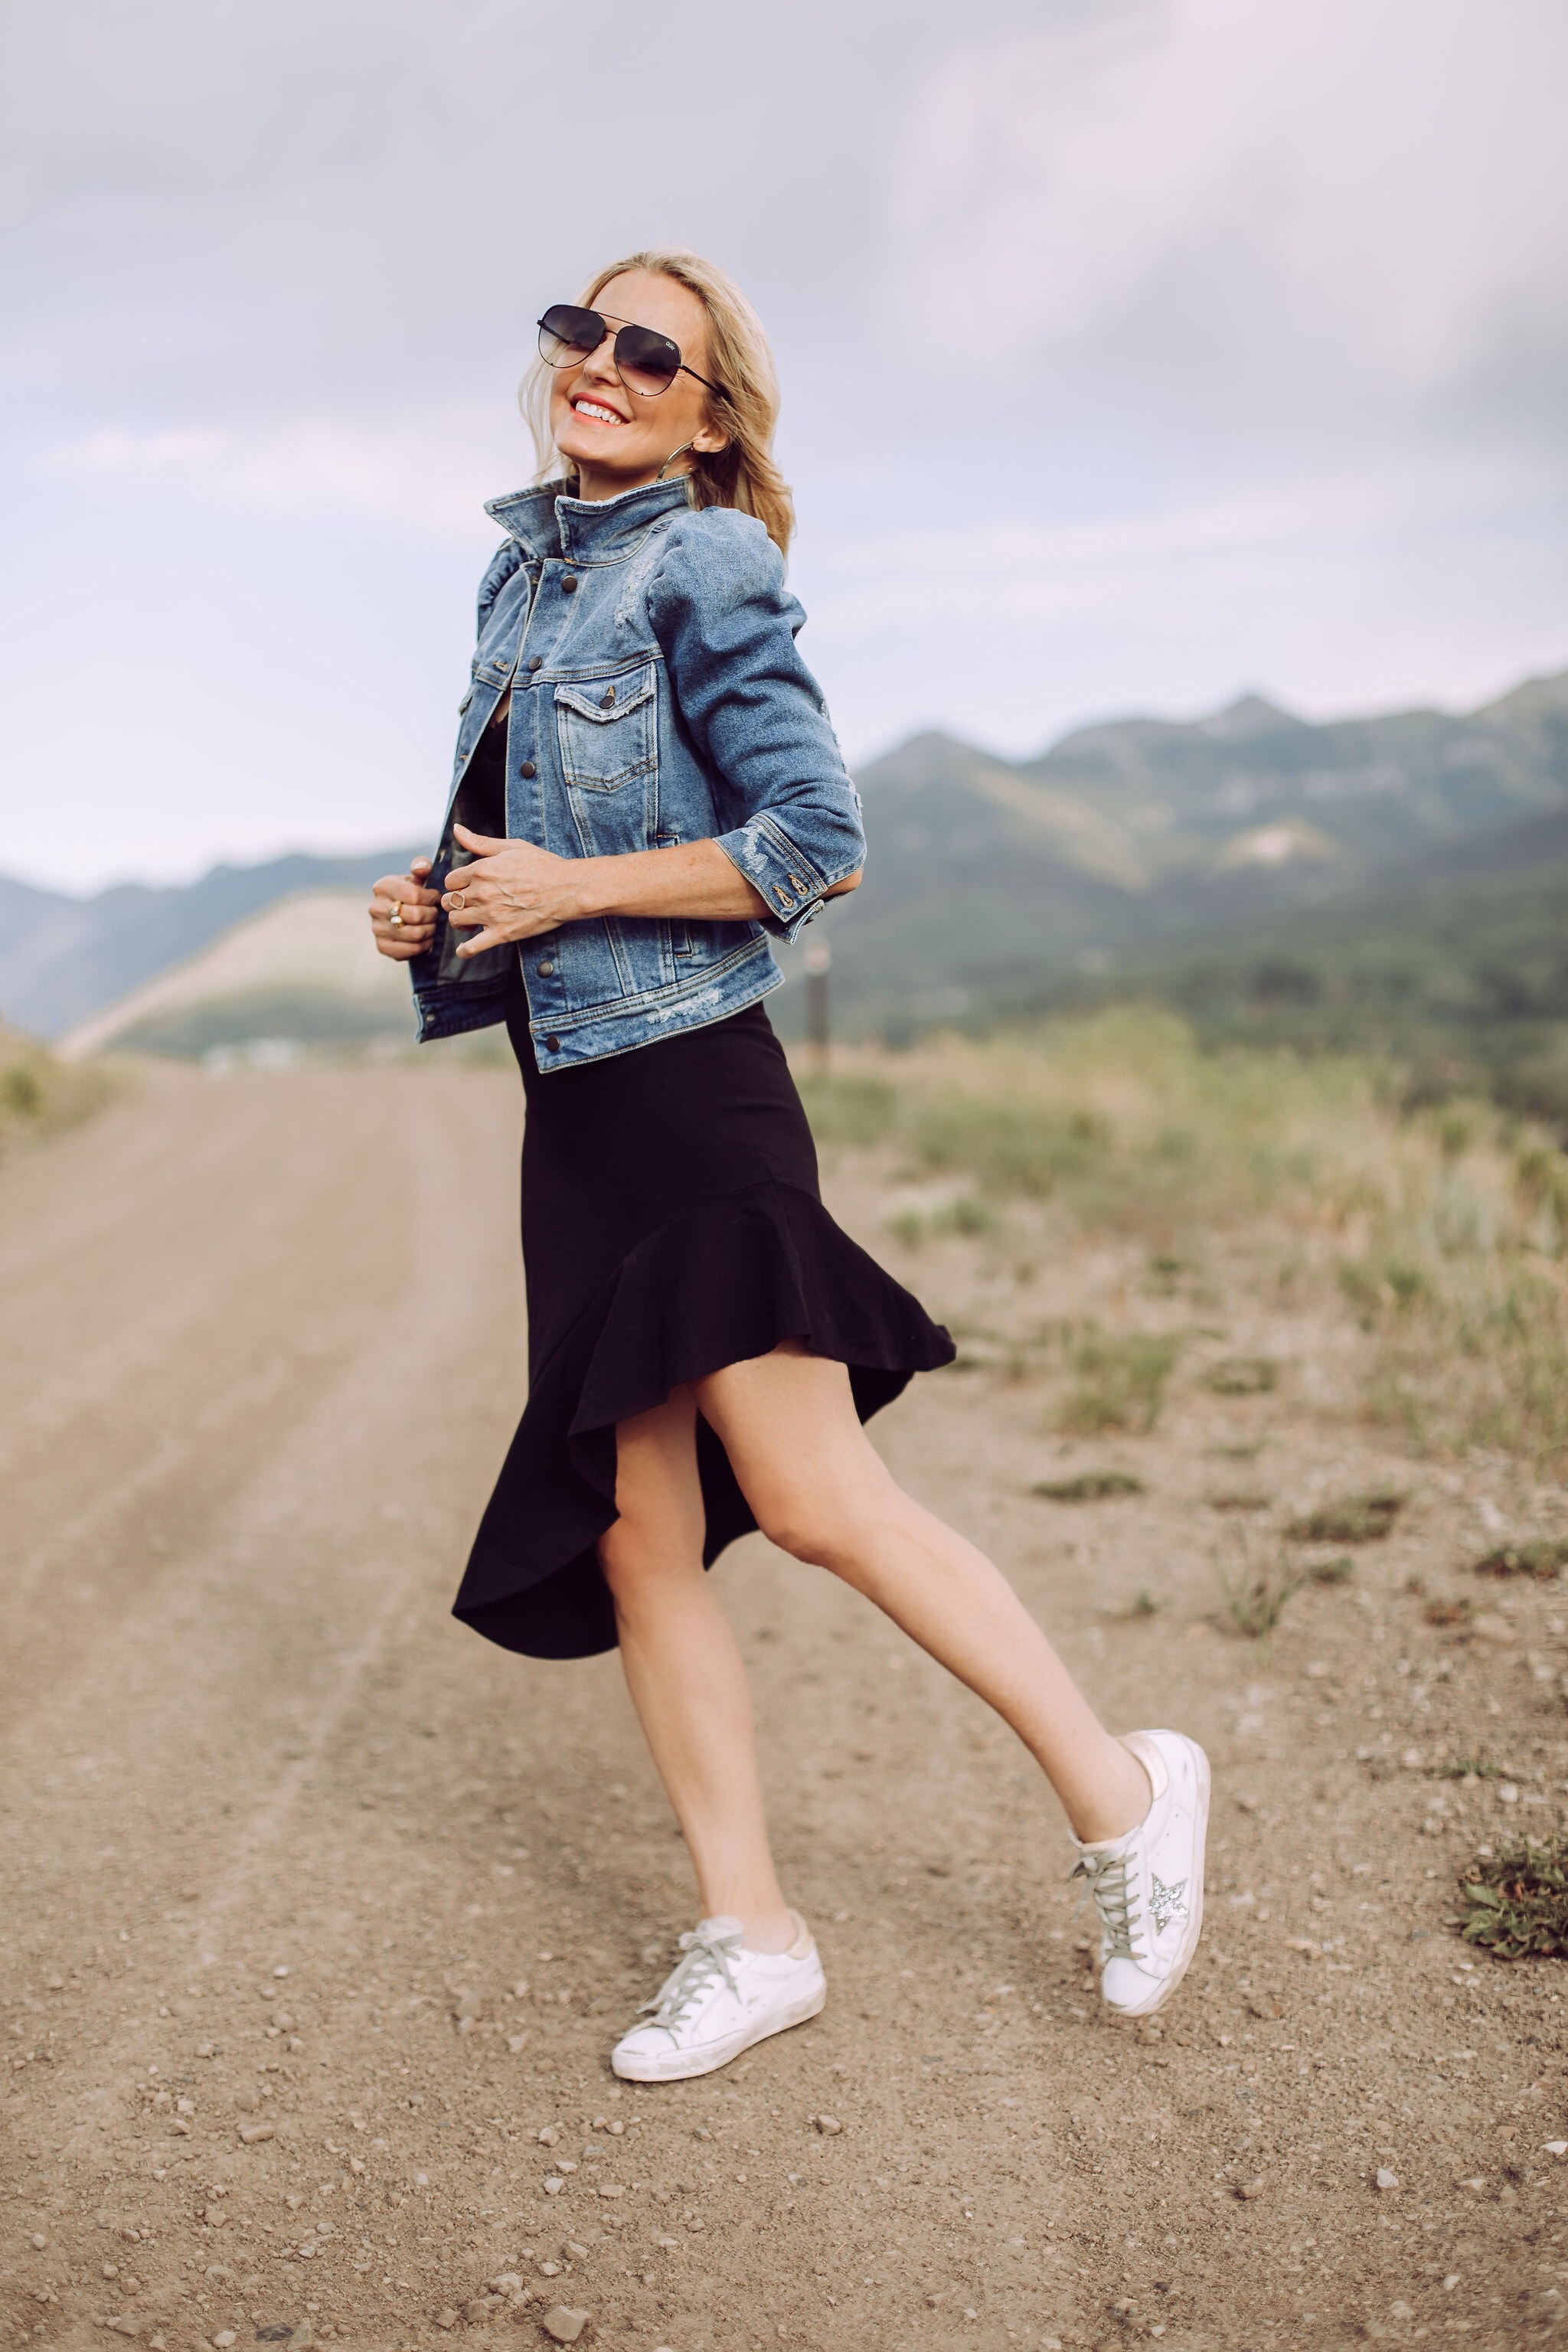 Day To Date Night Outfits, Fashion blogger Erin Busbee of Busbee Style wearing a black susana monaco dress with golden goose sneakers, retrofete denim puff sleeve jacket and aviator sunglasses in Telluride, Colorado